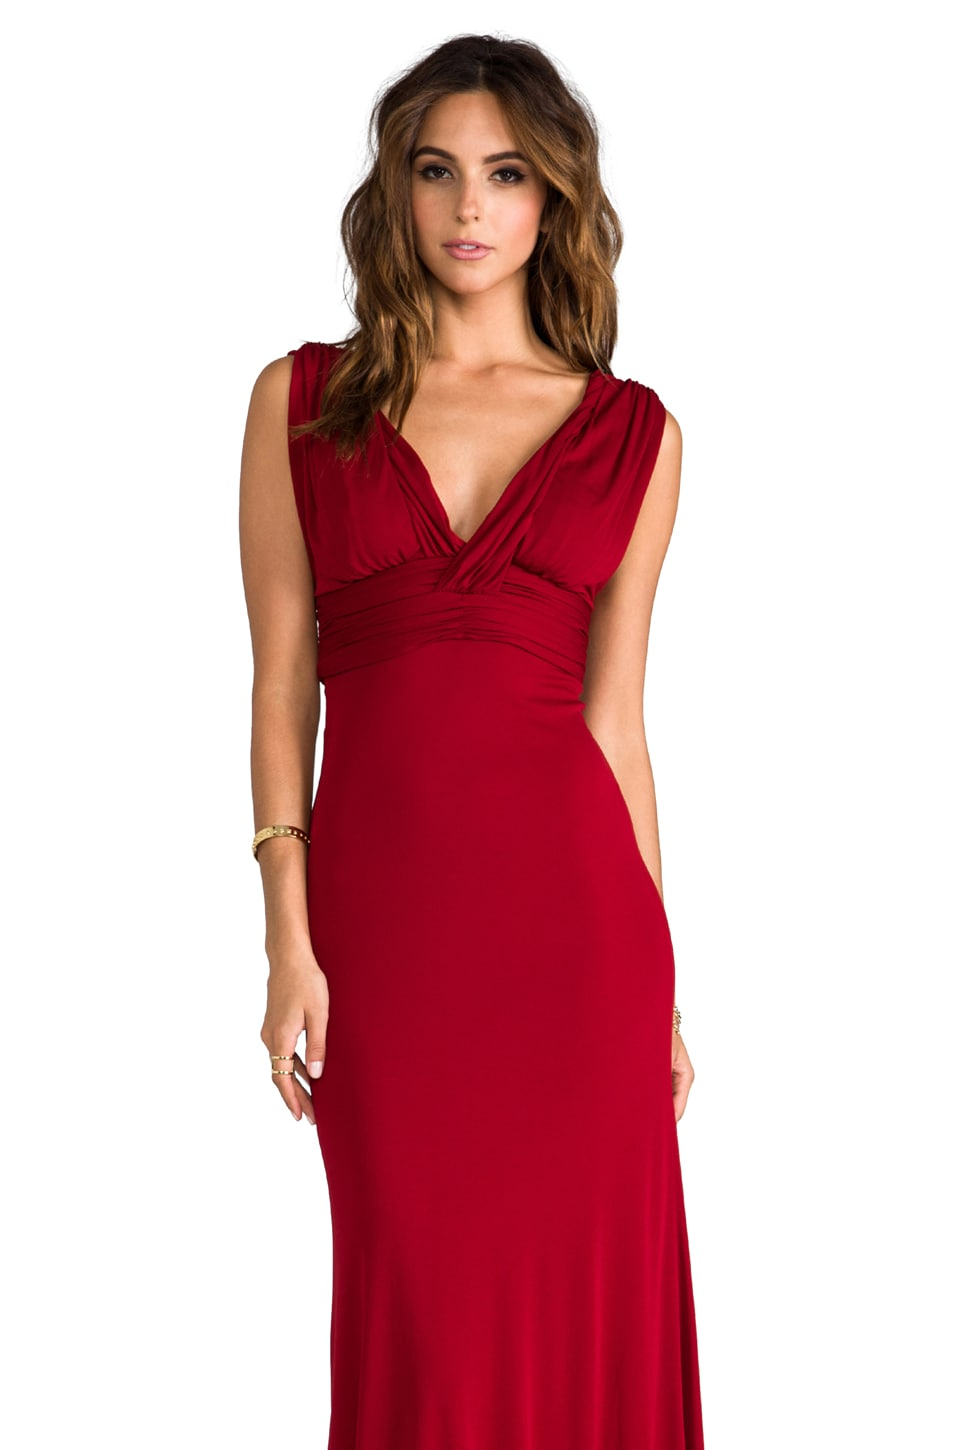 Issa Long Sleeveless Dress in Bordeaux